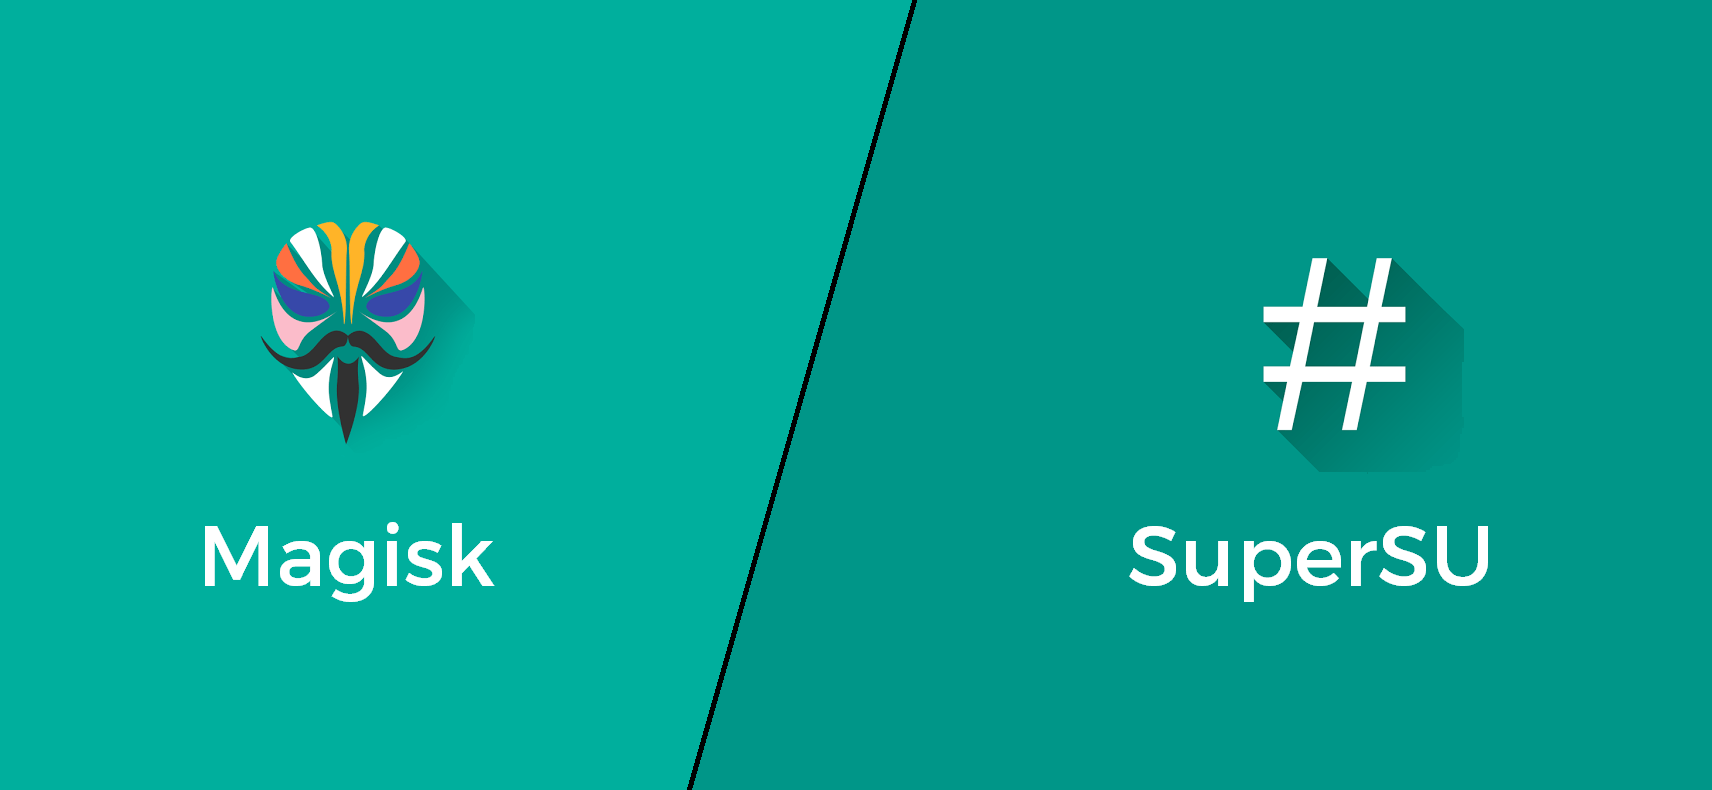 Magisk Vs SuperSU: What's the Difference?